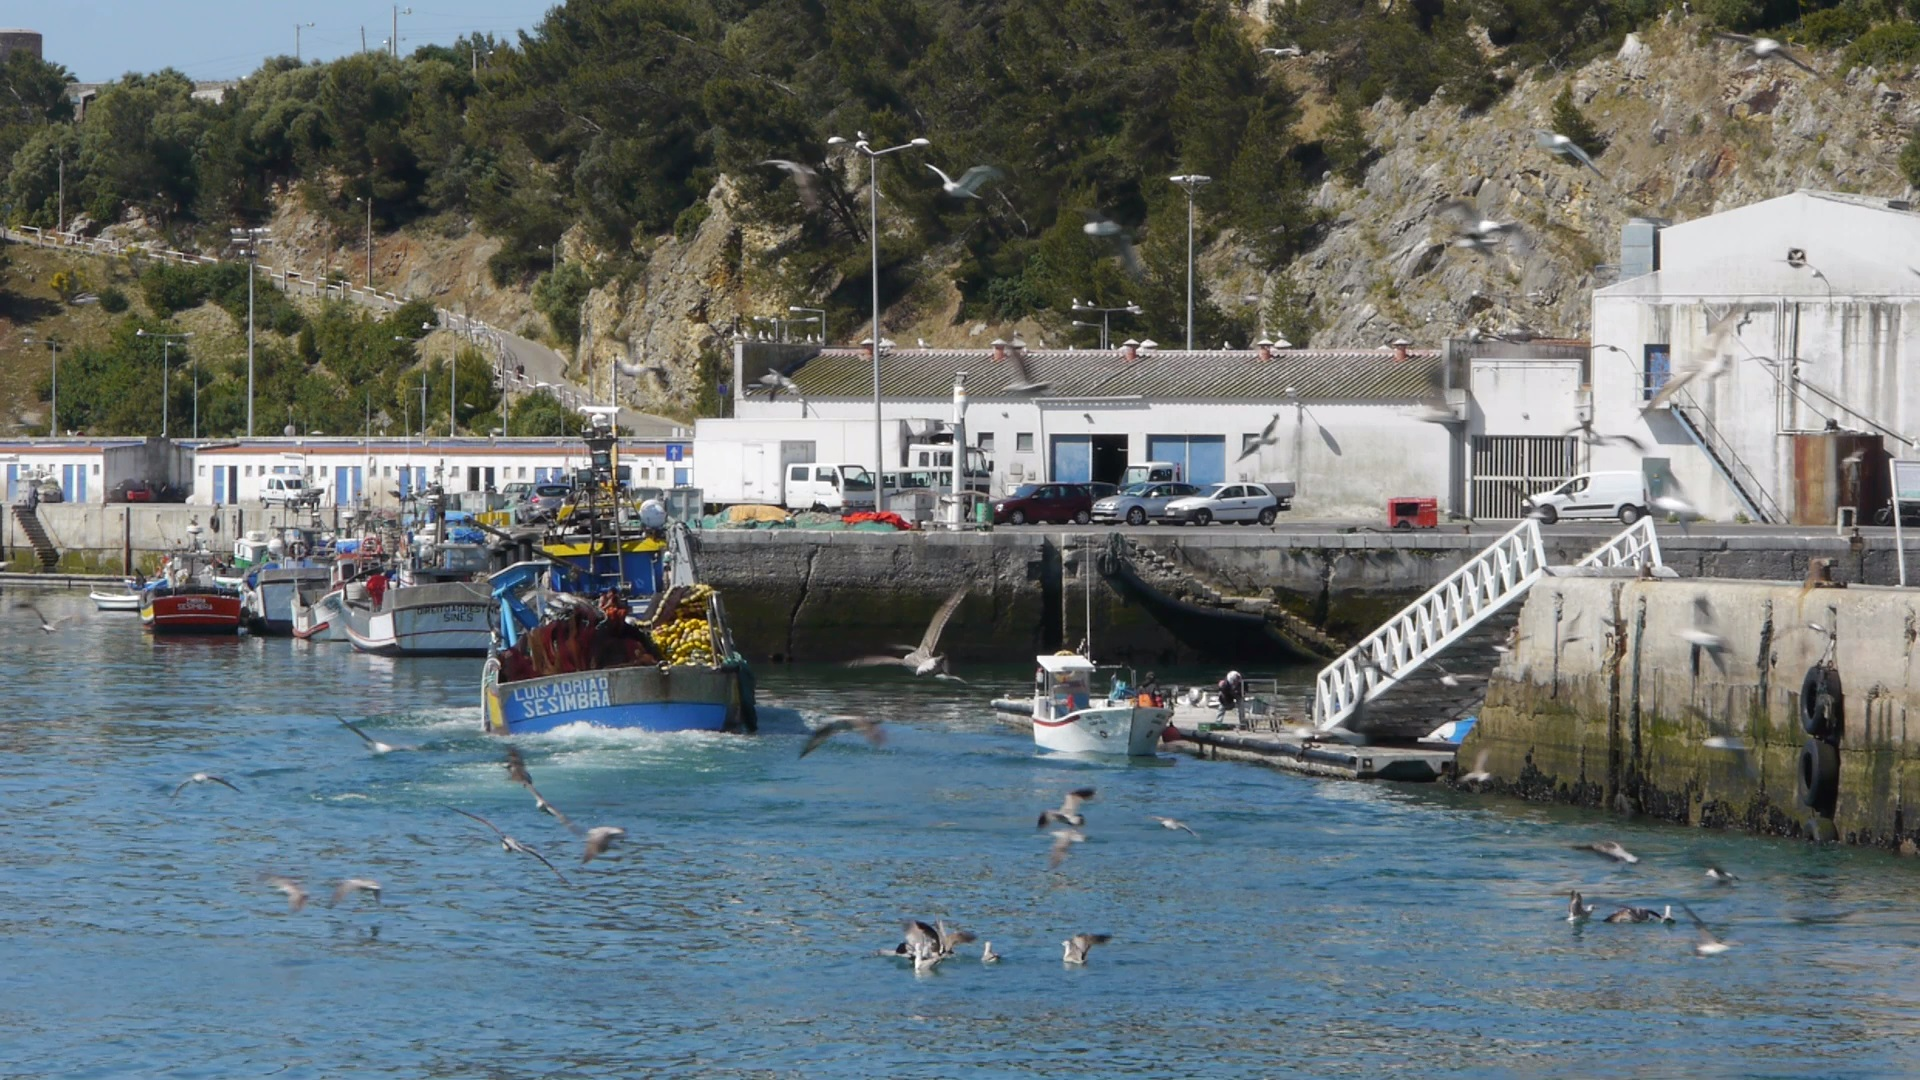 Portugal: Sardines and the Sea